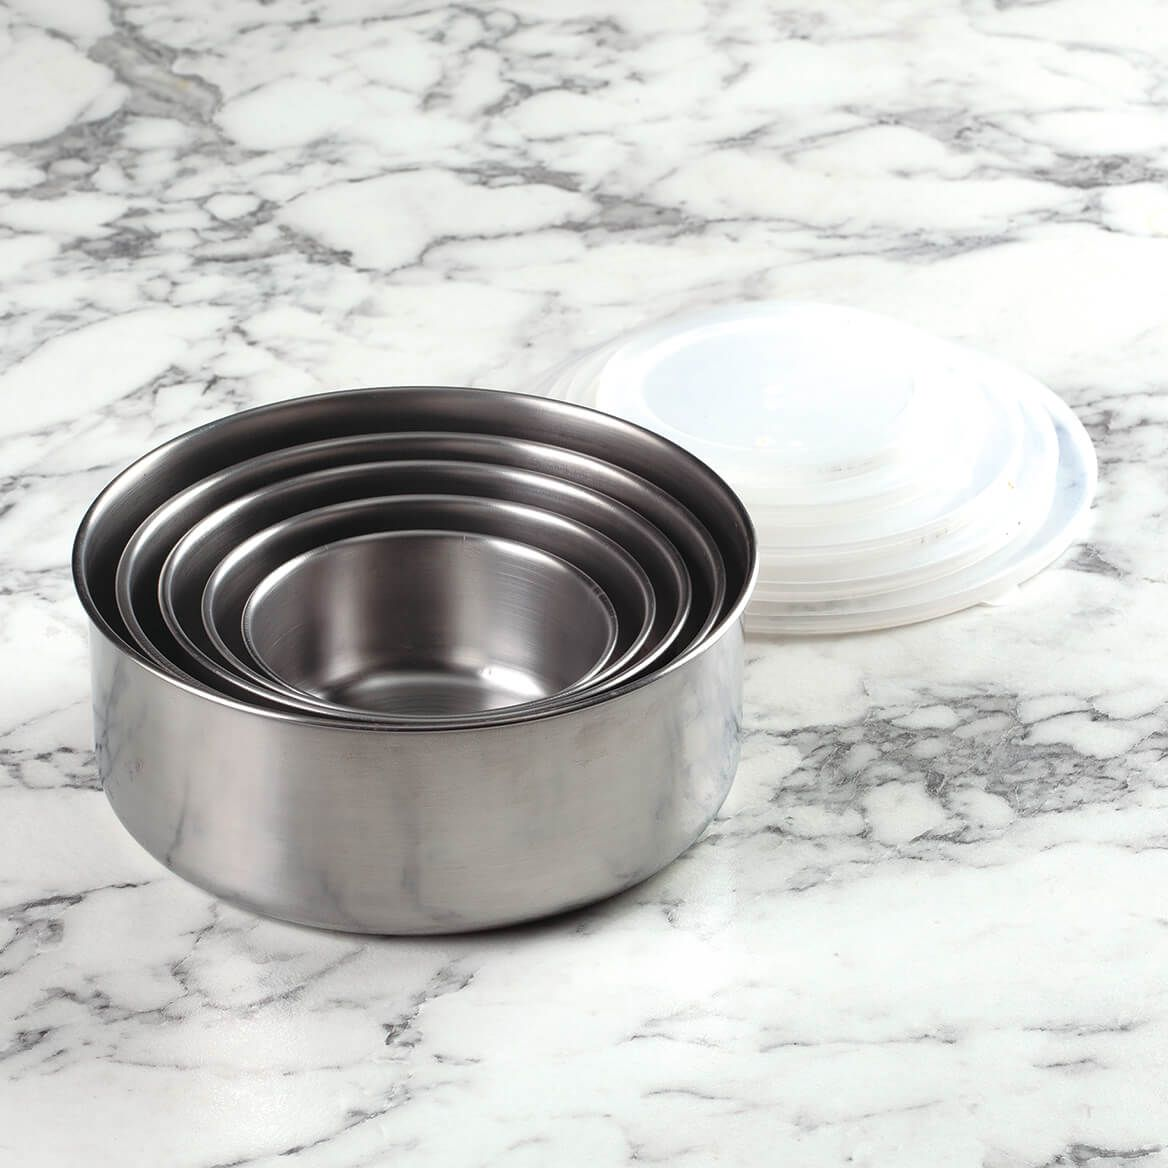 Stainless Steel Storage Bowls with Lids, Set of 5-372015